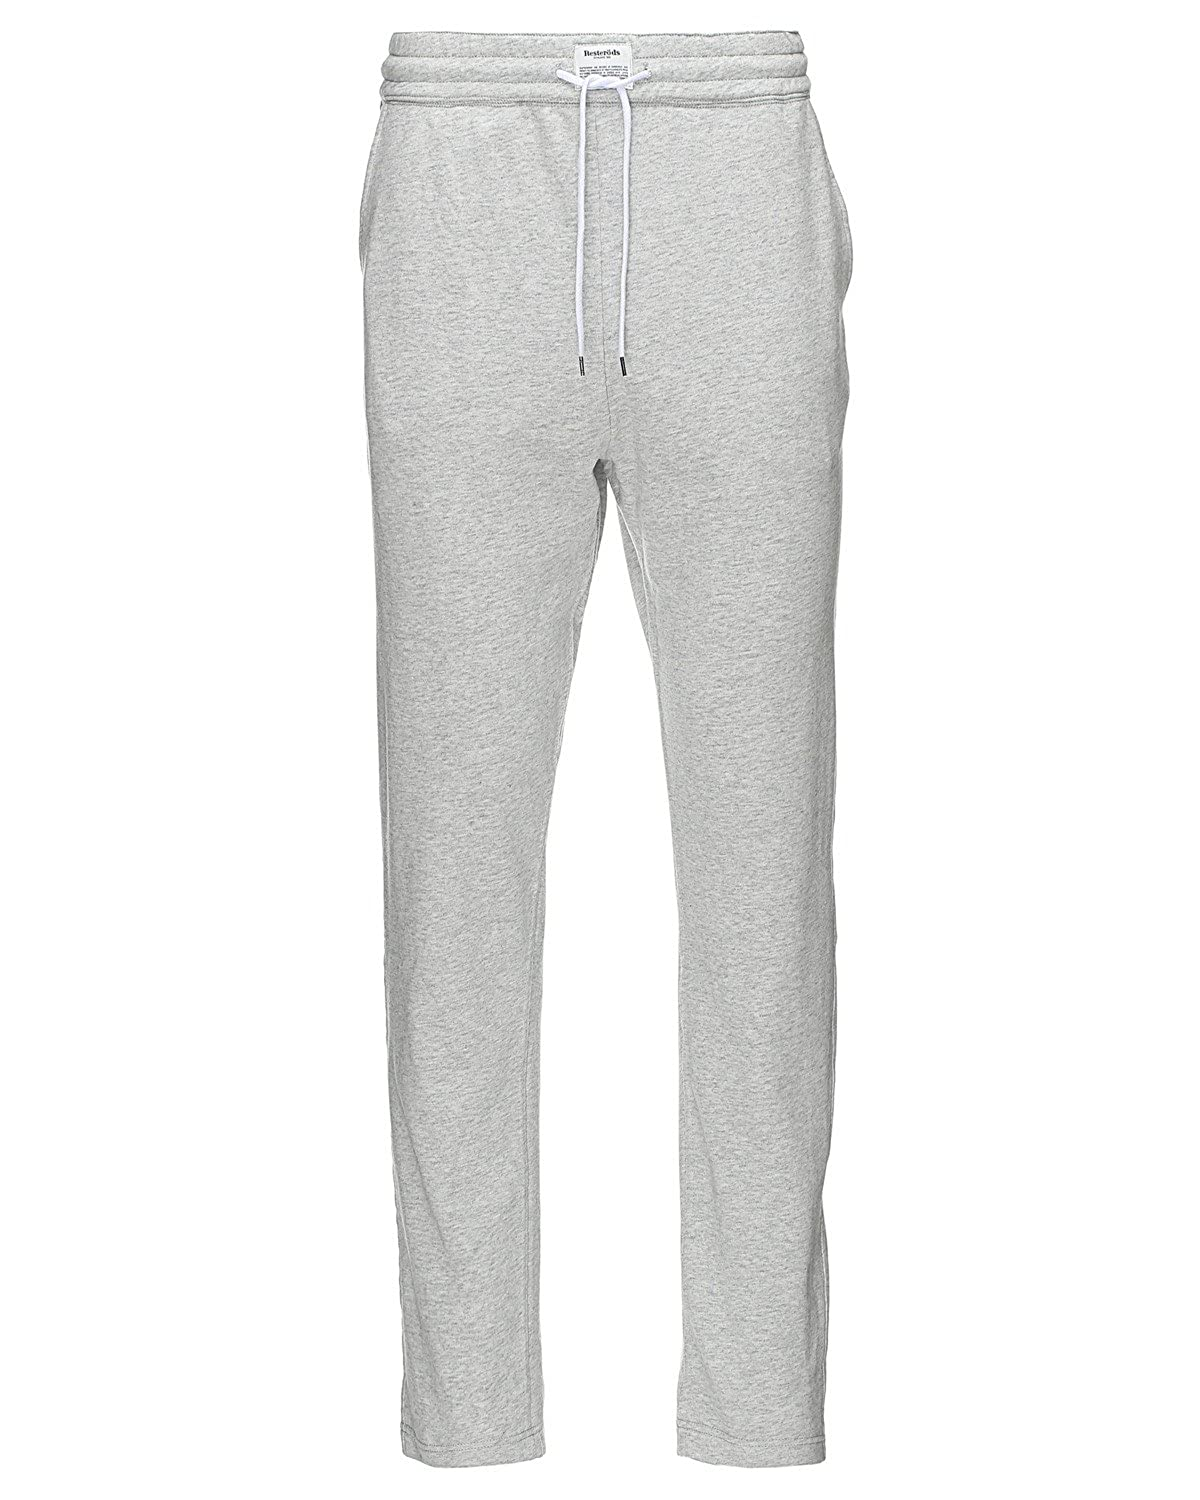 Rester?ds Men's Relaxed Trousers